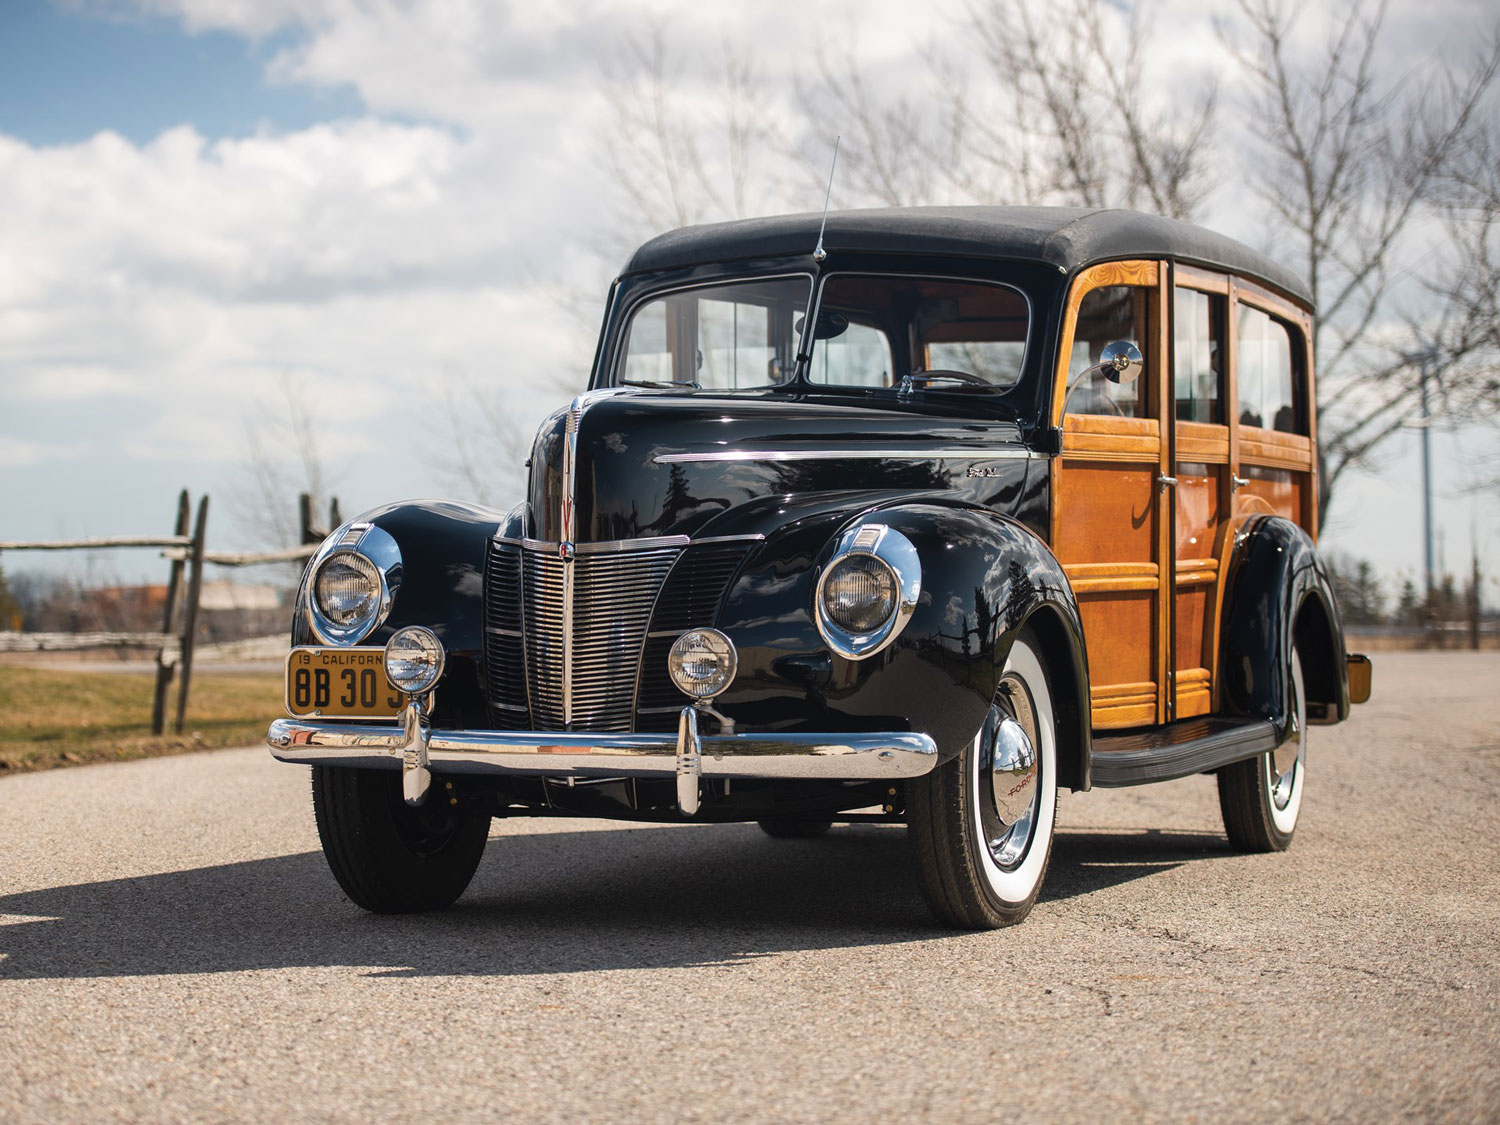 1940 Ford DeLuxe Station Wagon